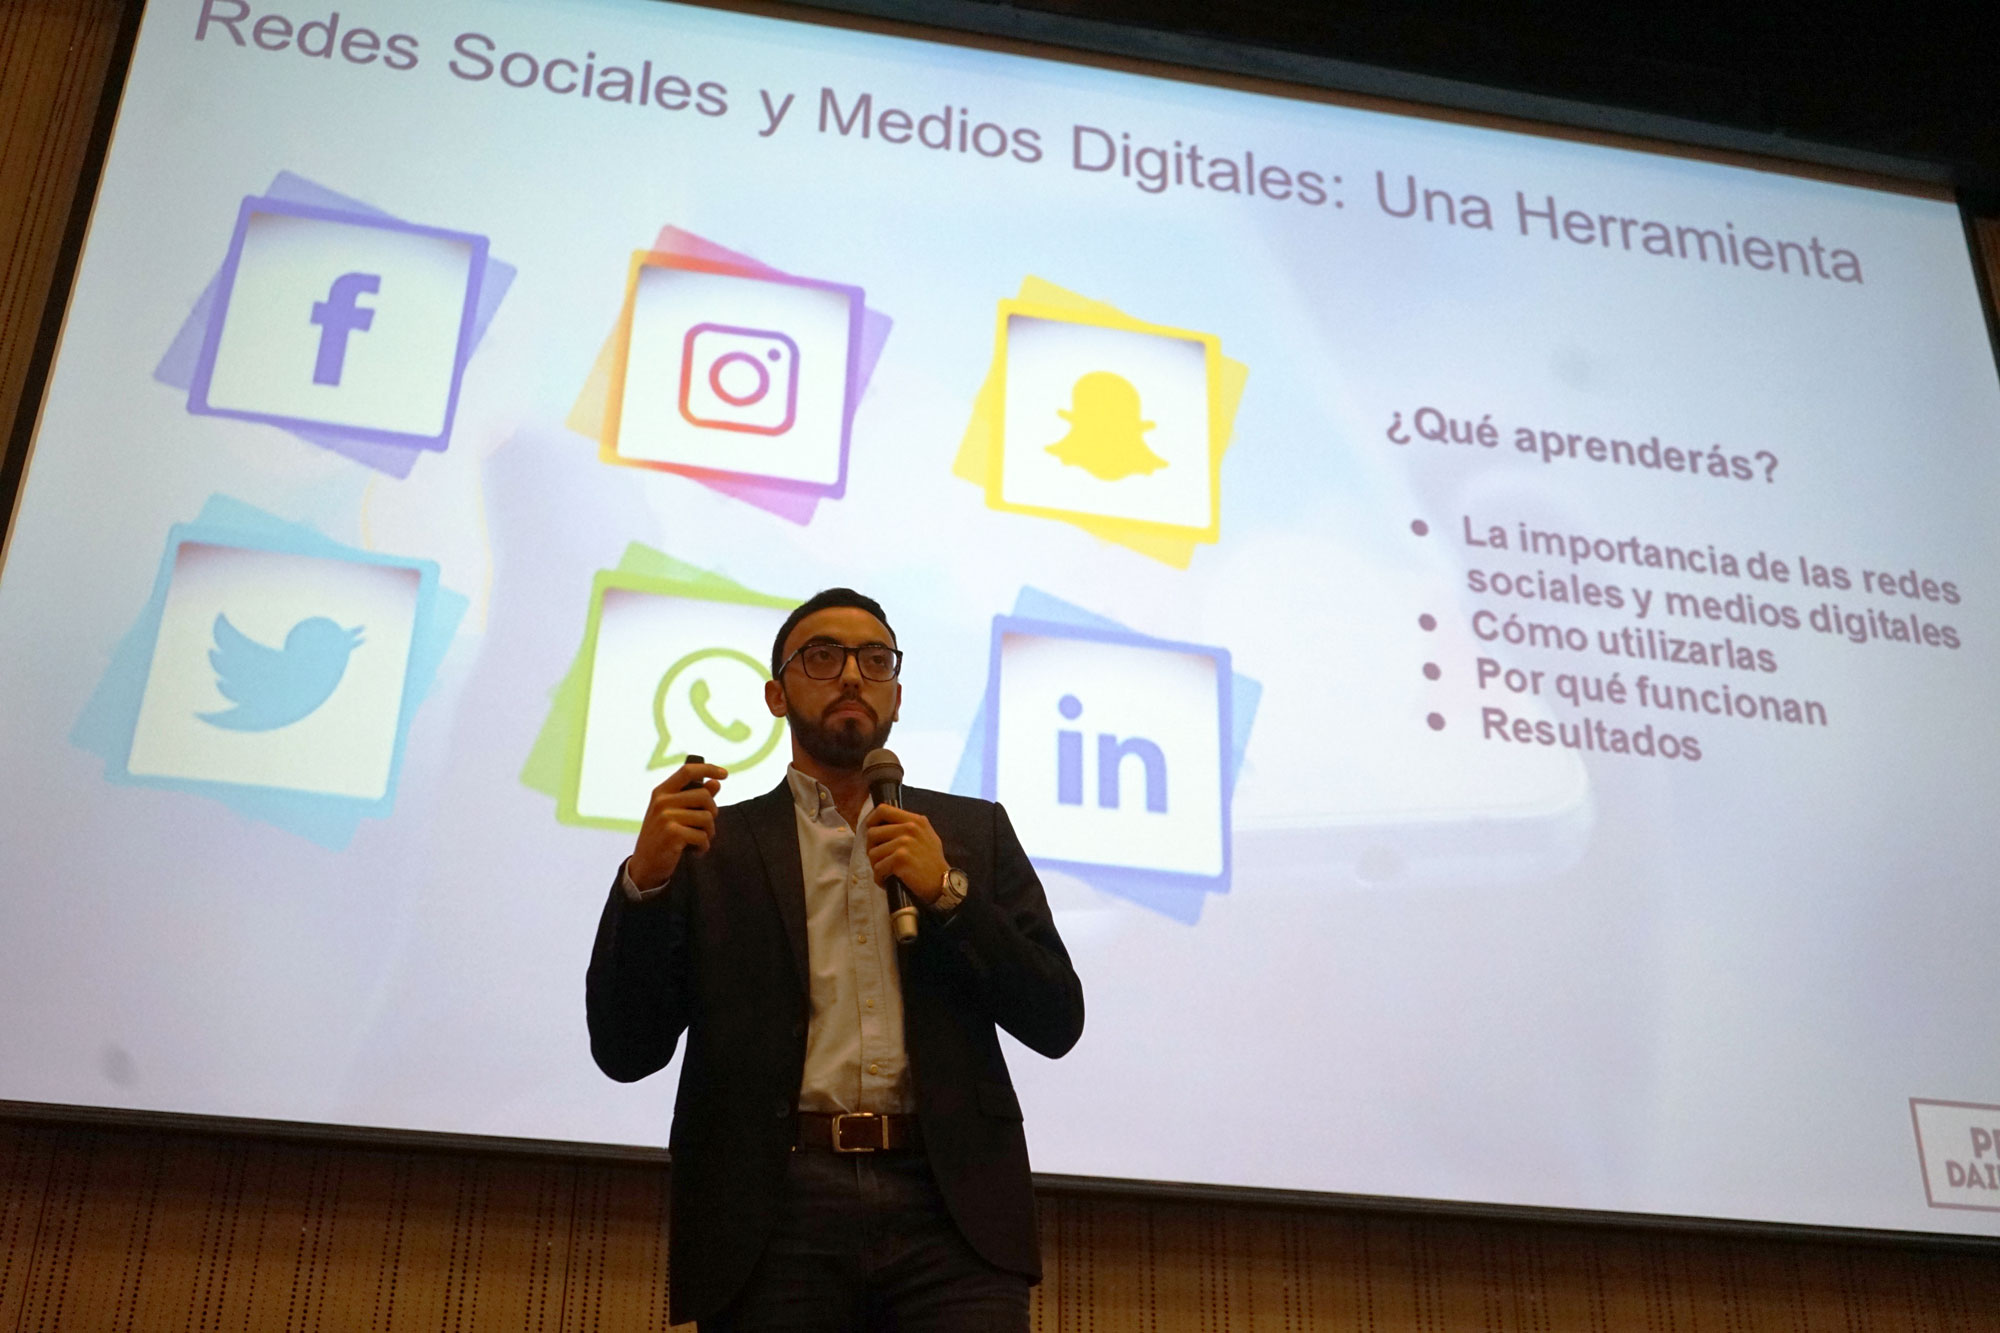 Redes sociales y Marketing Digital en la industria del café